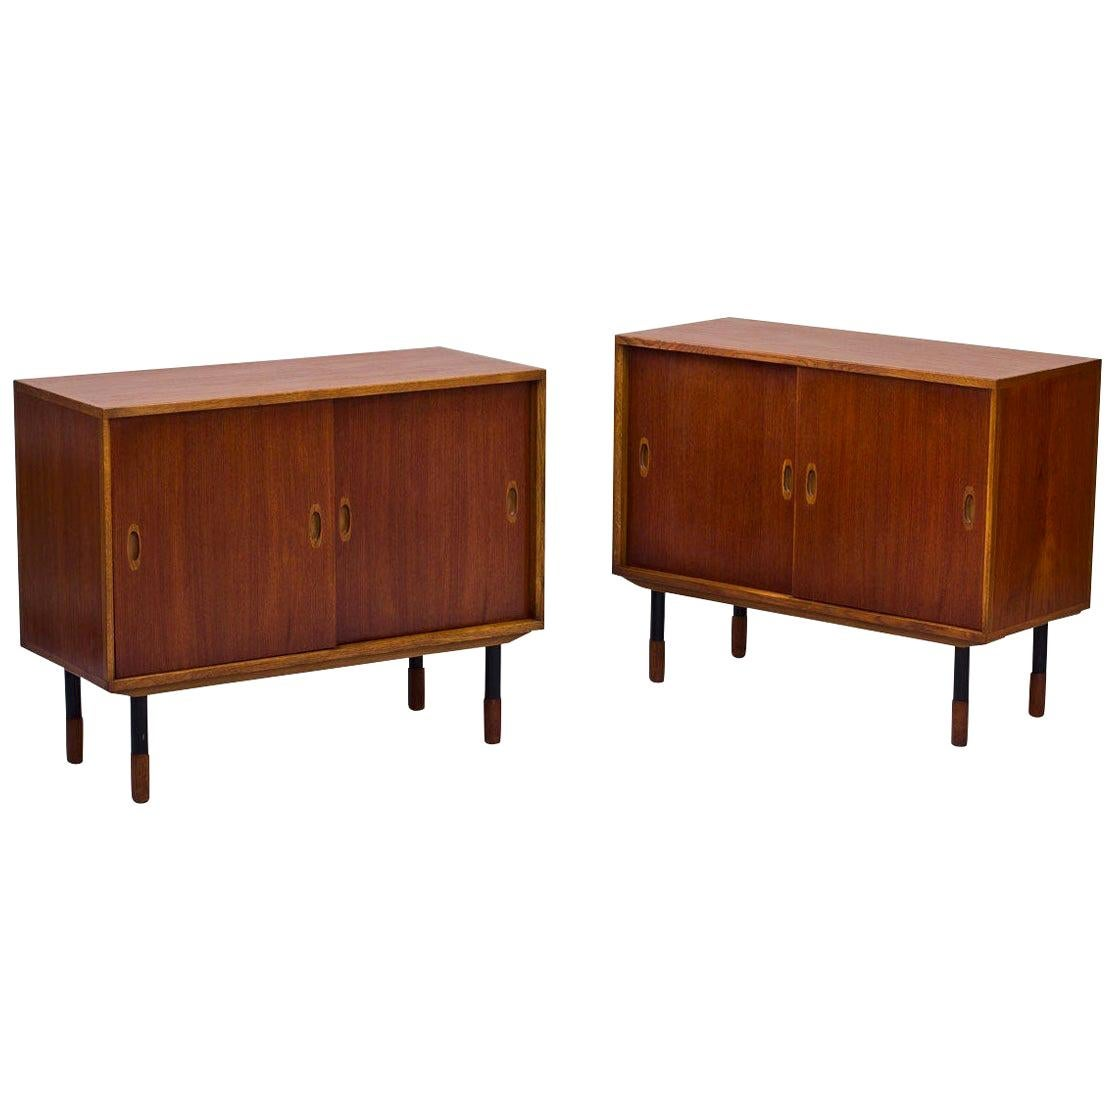 Swedish Sideboards by Westbergs Möblers, 1950s, Set of 2